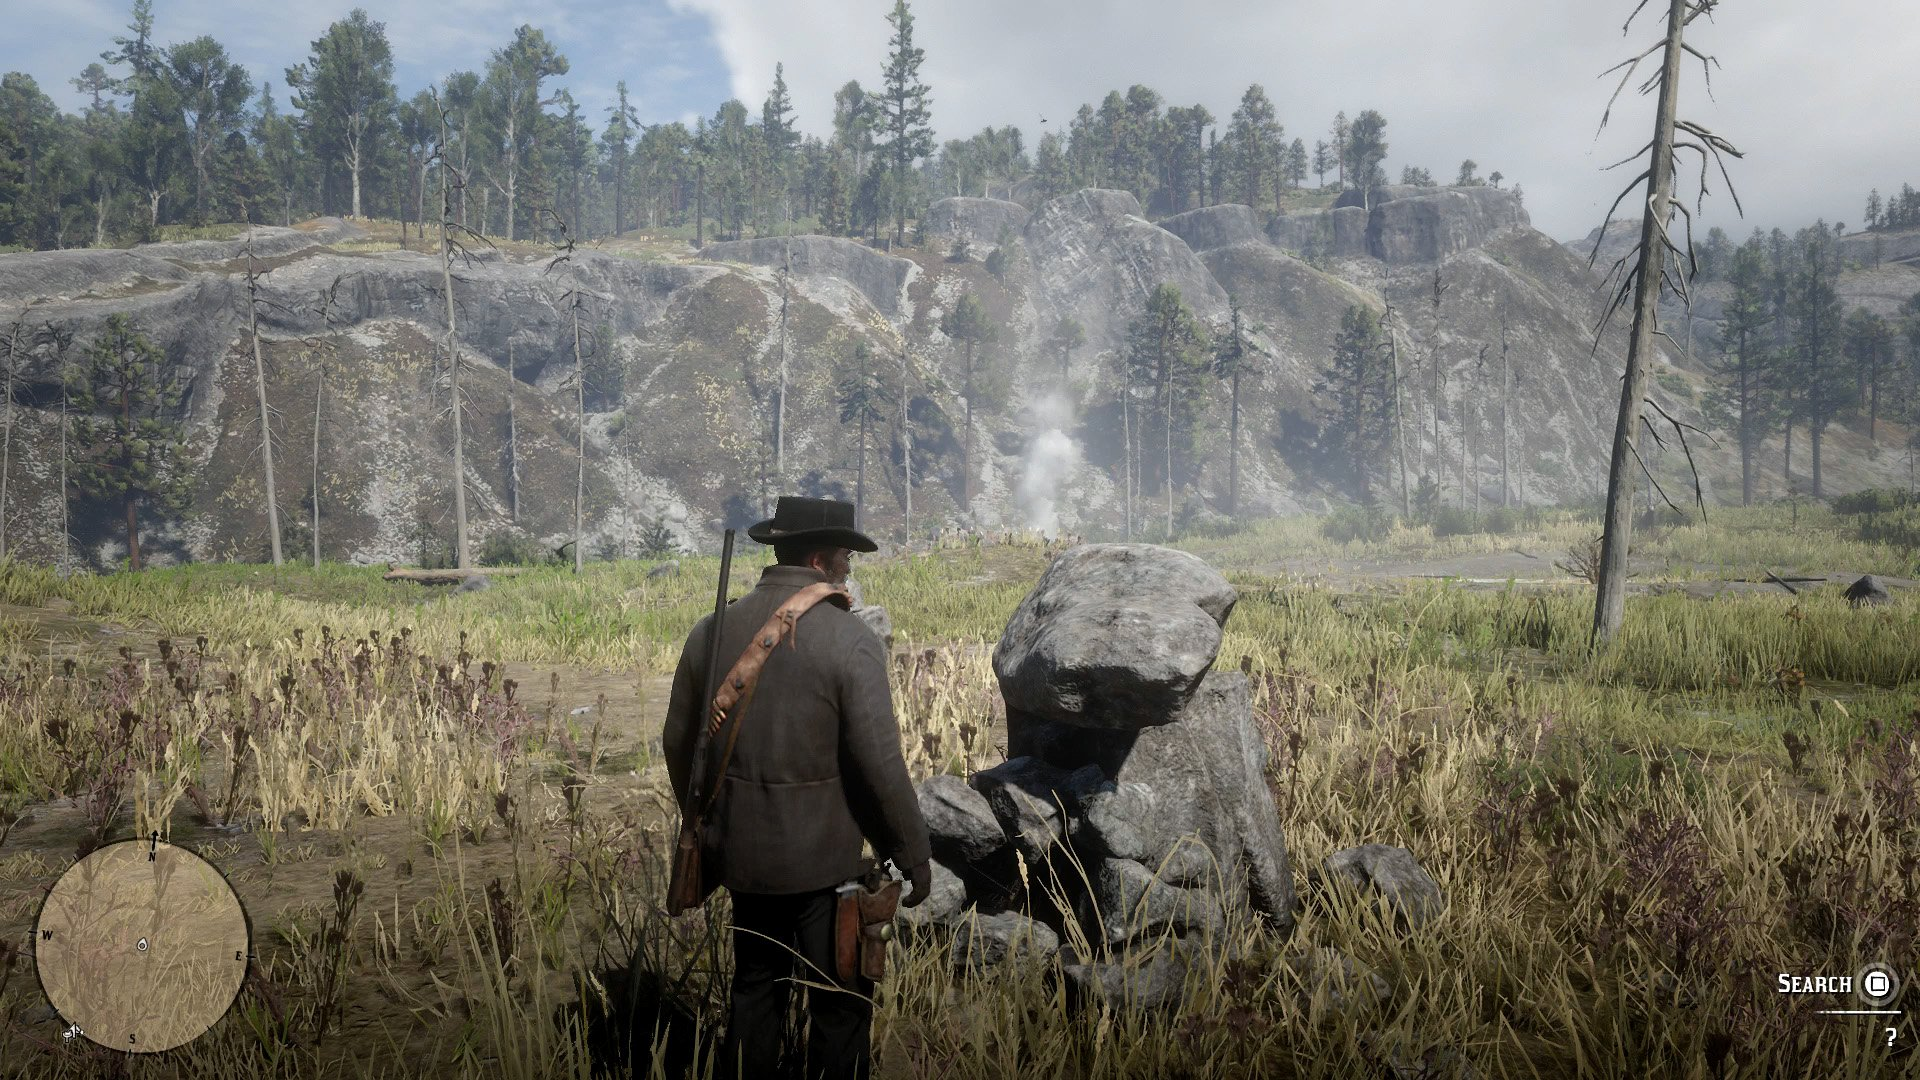 Red Dead Redemption 2 has biggest entertainment opening weekend ever